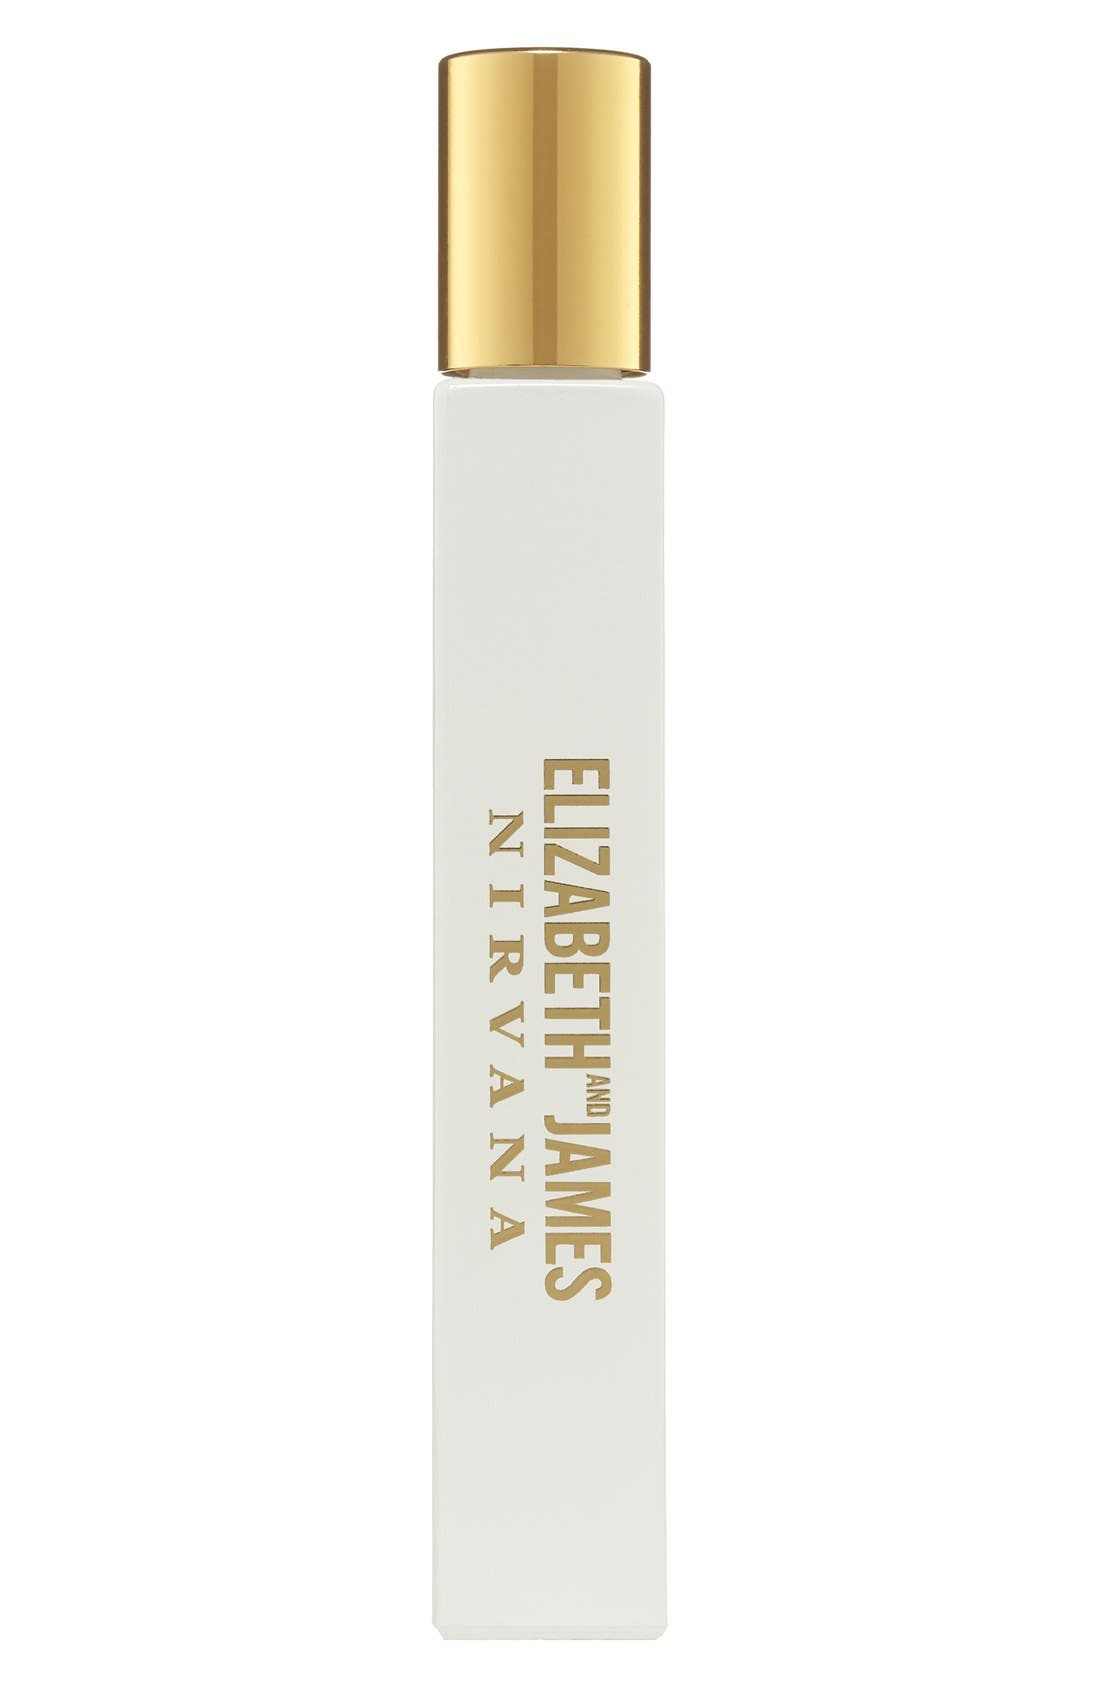 Elizabeth and James 'Nirvana White' Eau de Parfum Rollerball